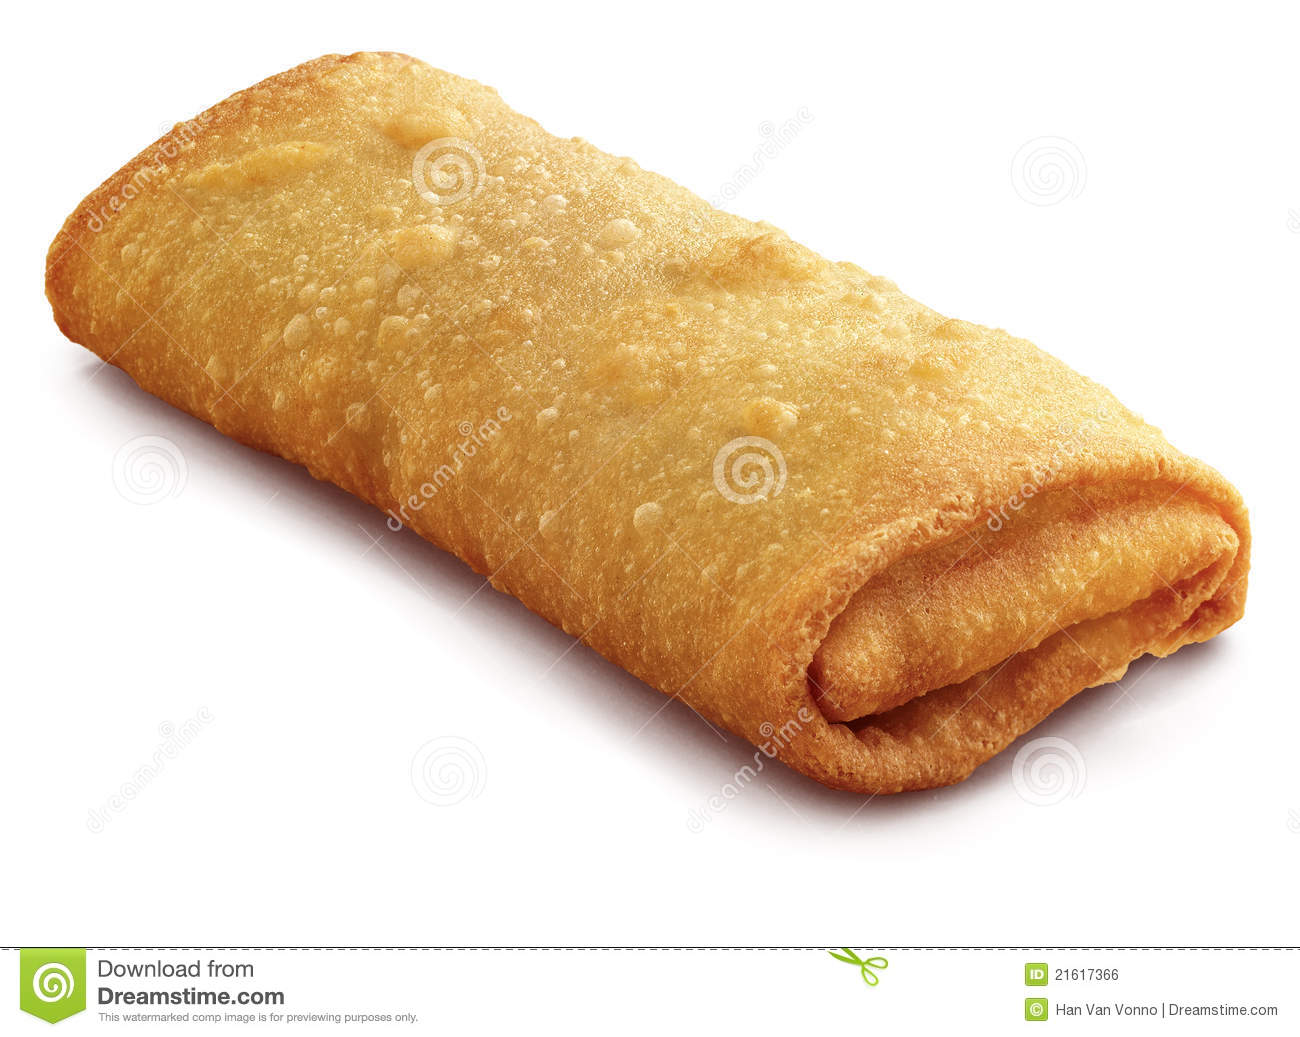 Egg Roll Royalty Free Stock Image - Image: 21617366